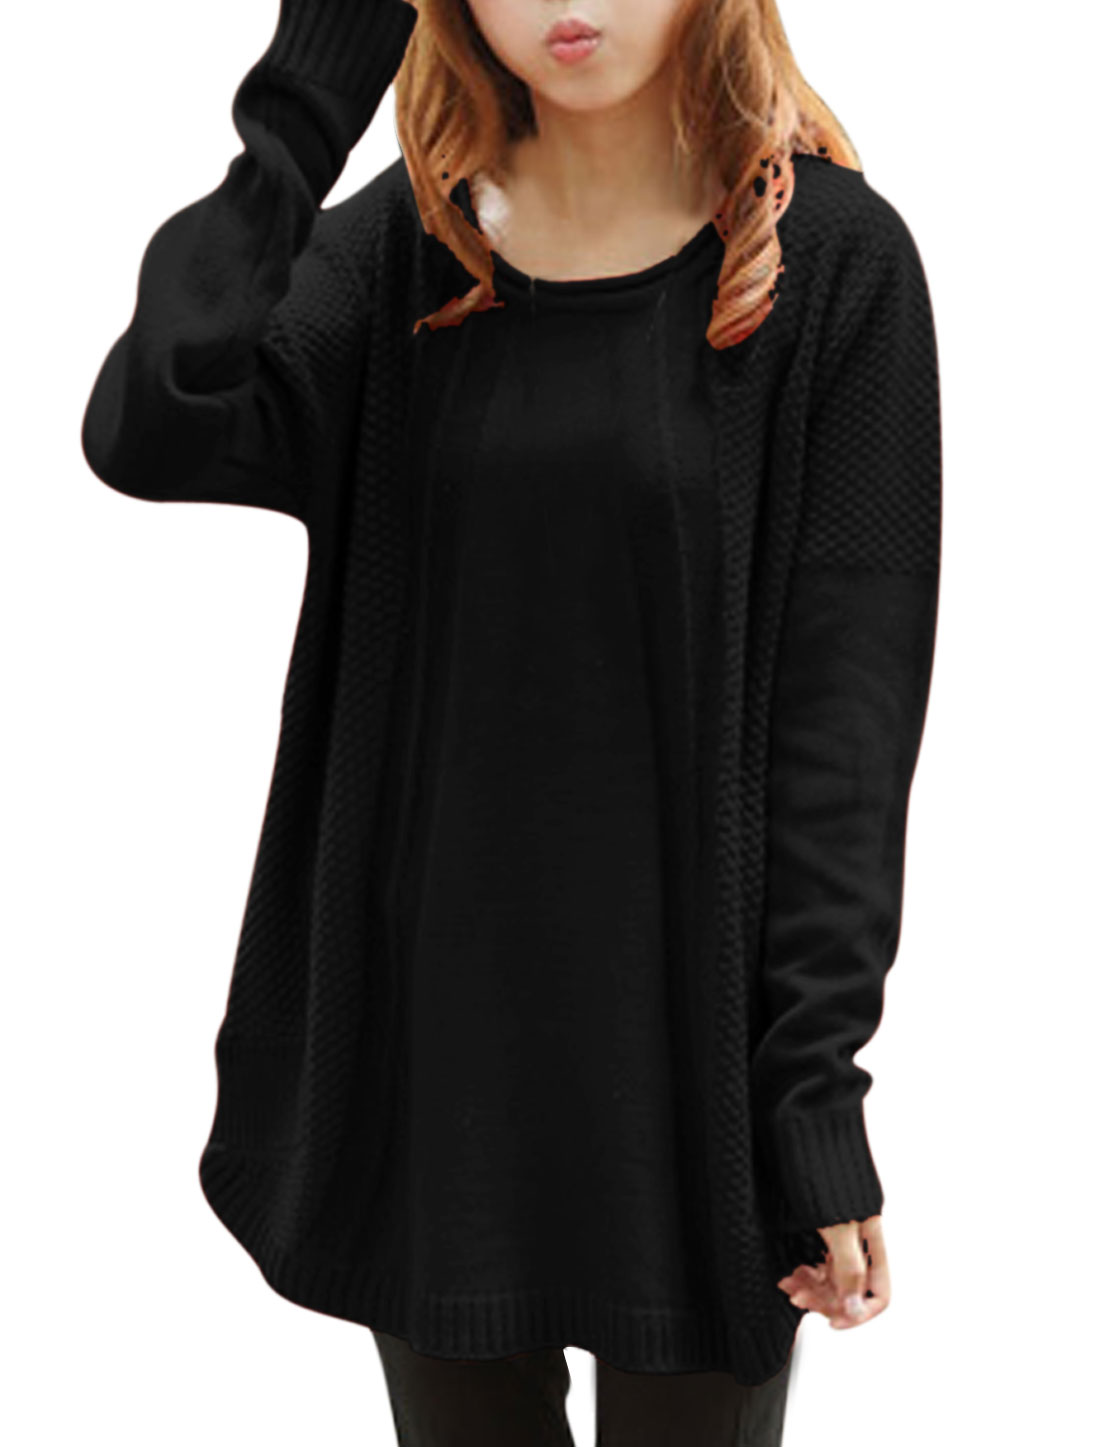 Women Pullover Long Batwing Sleeve Loose Tunic Knitting Sweater Black XS